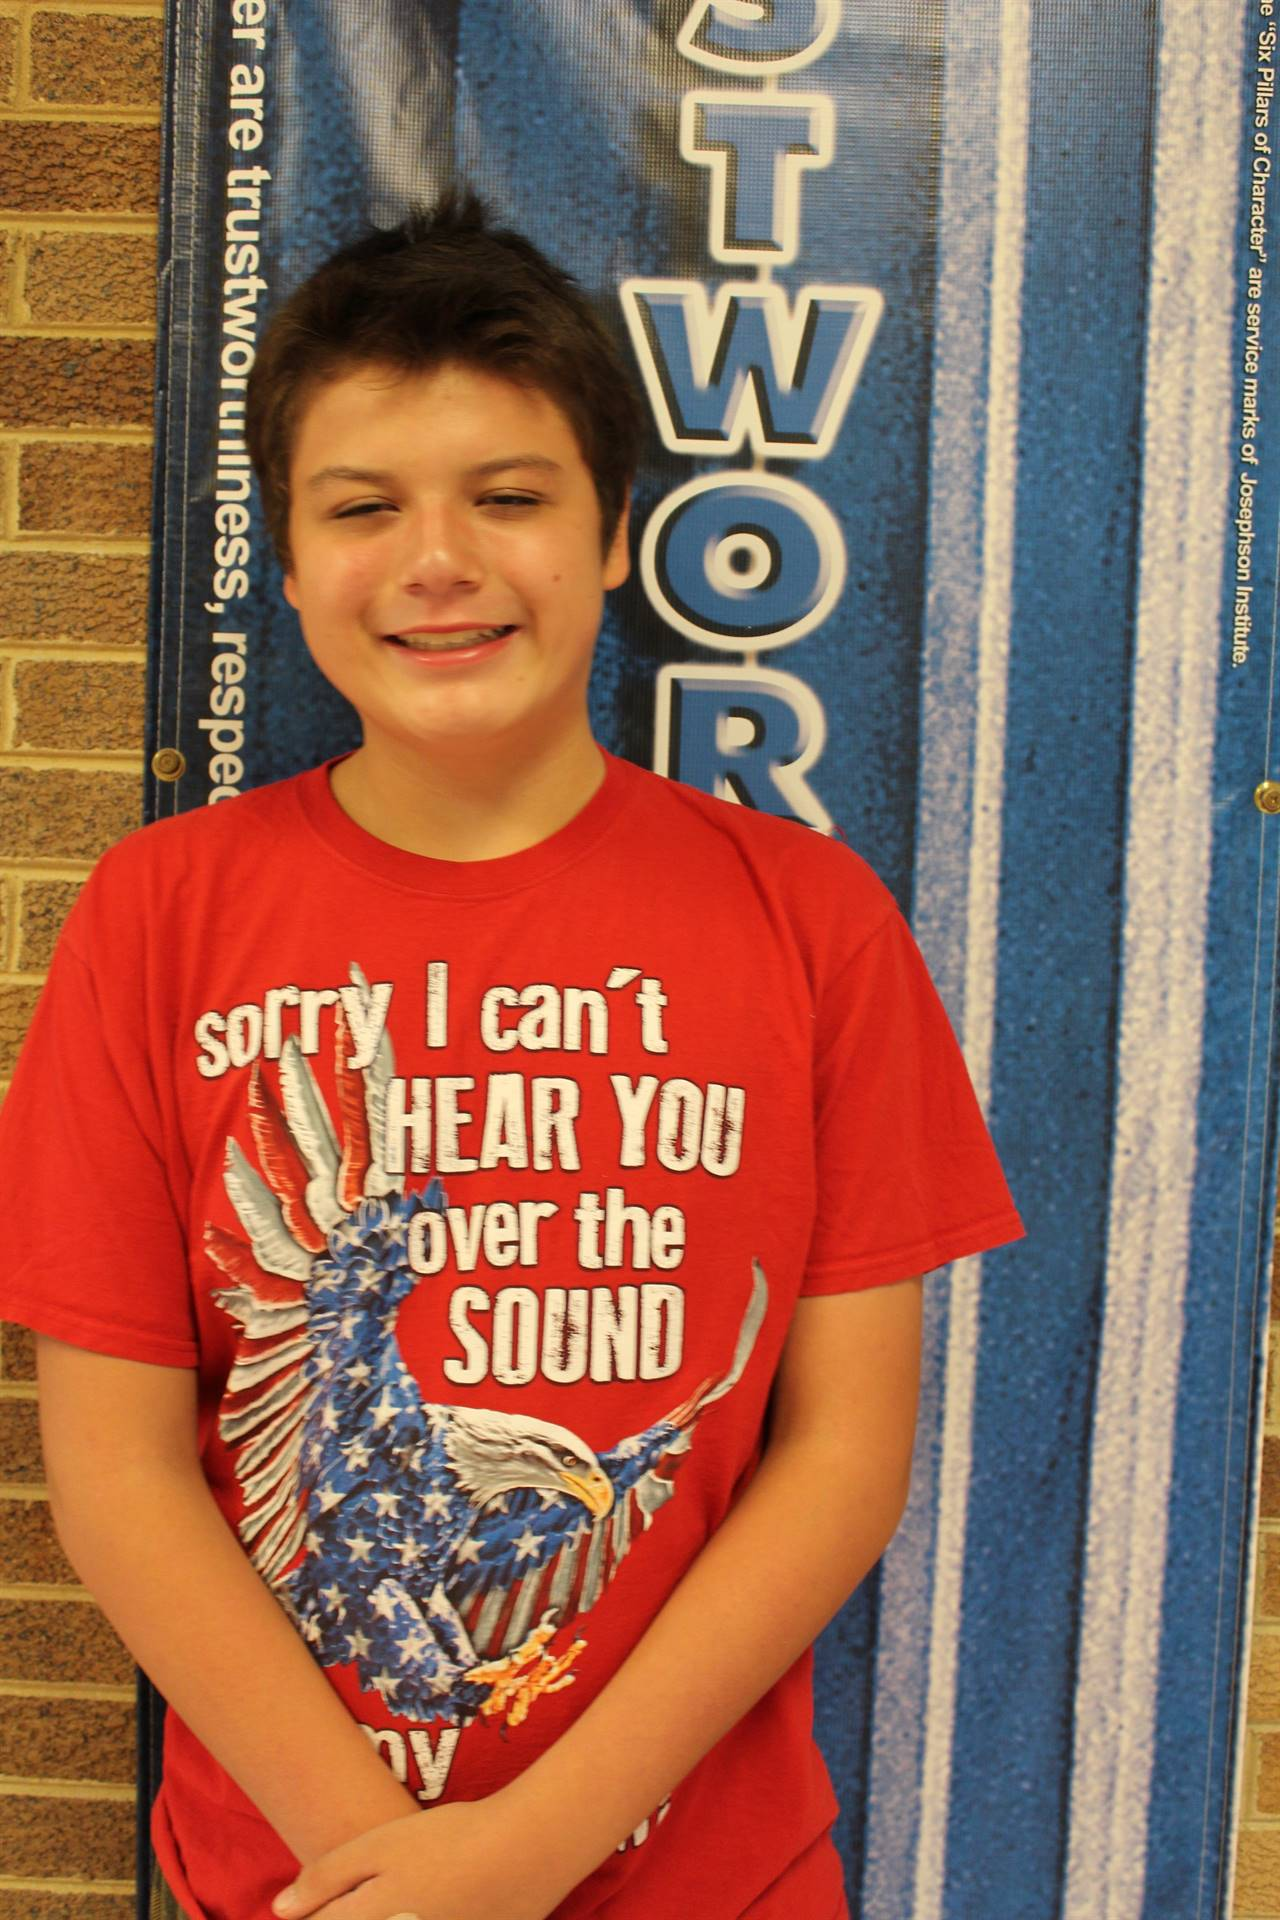 JJ M. October - Student of Character (Trustworthiness)